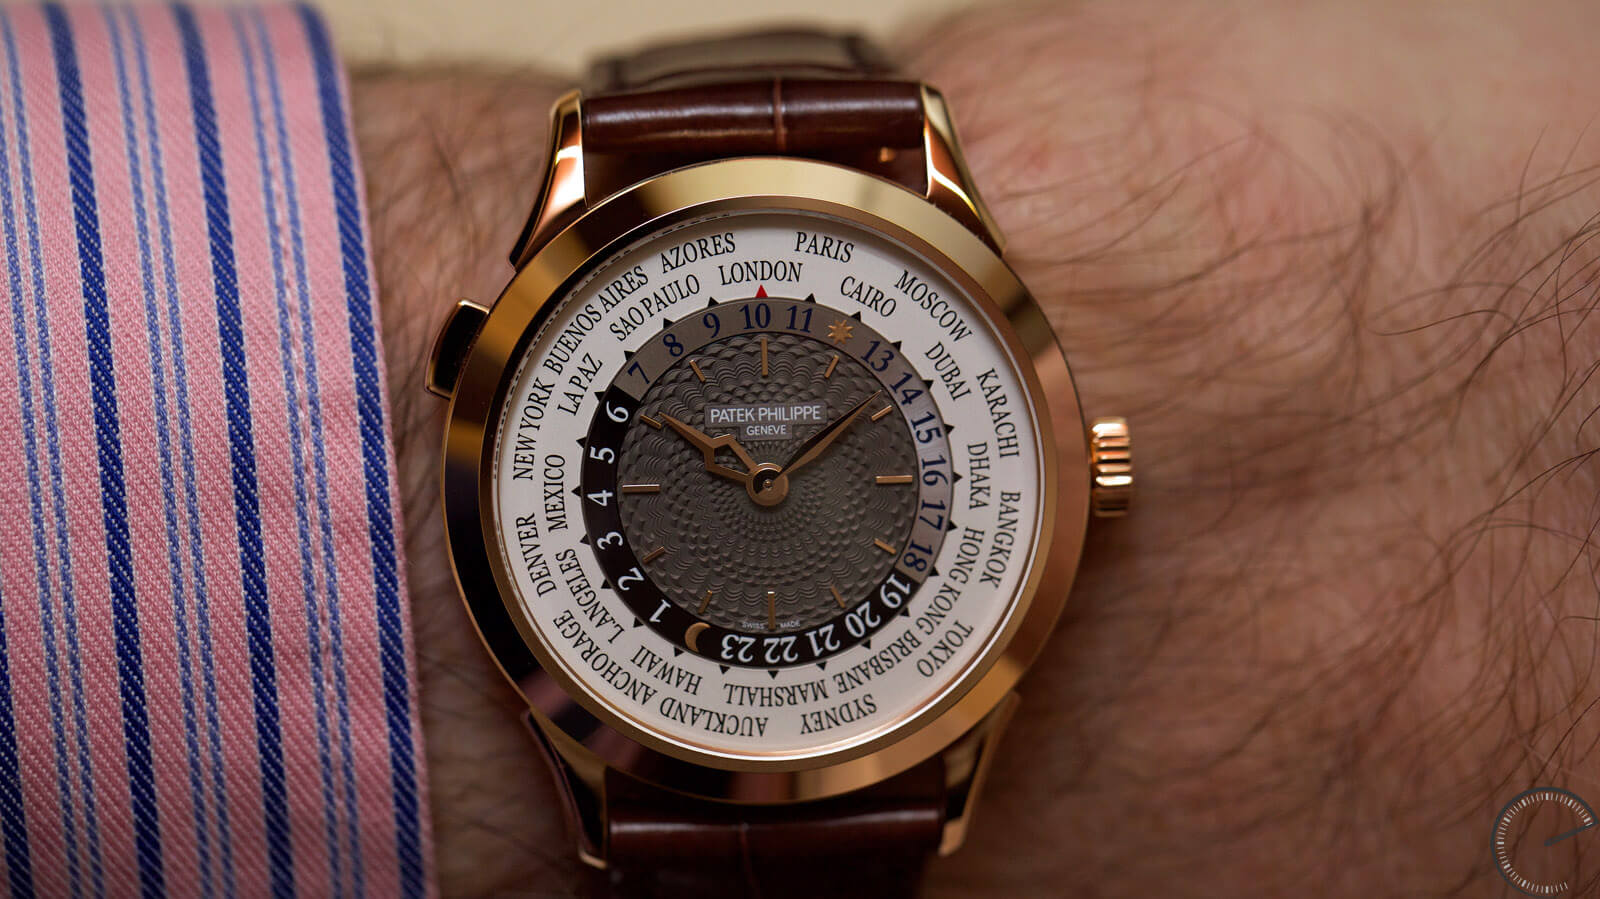 Image of Patek Philippe World Time Watch Ref. 5230R